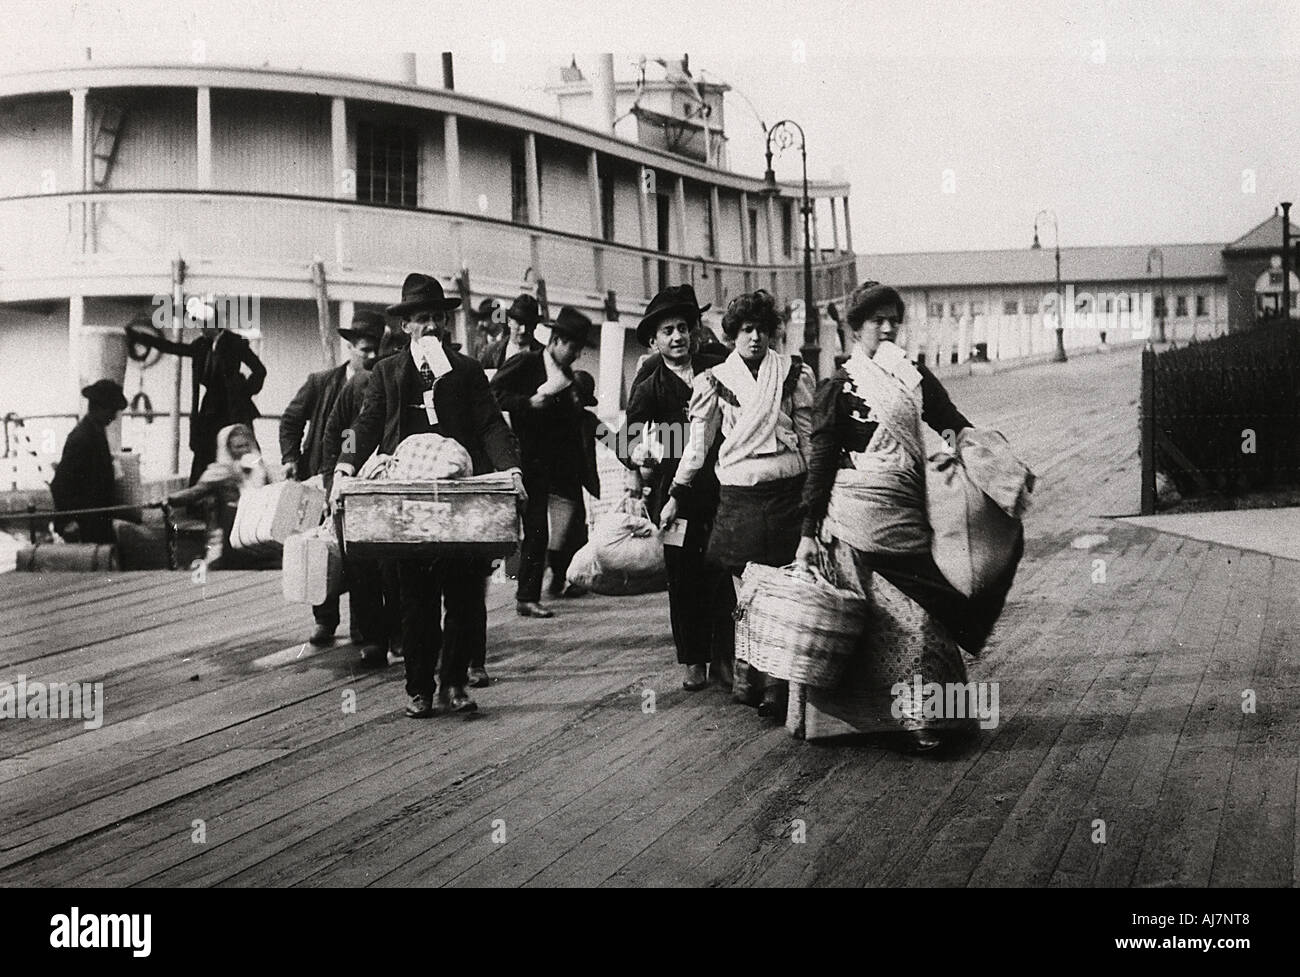 Immigrants to the USA landing at Ellis Island New York c1900  Stock Photo